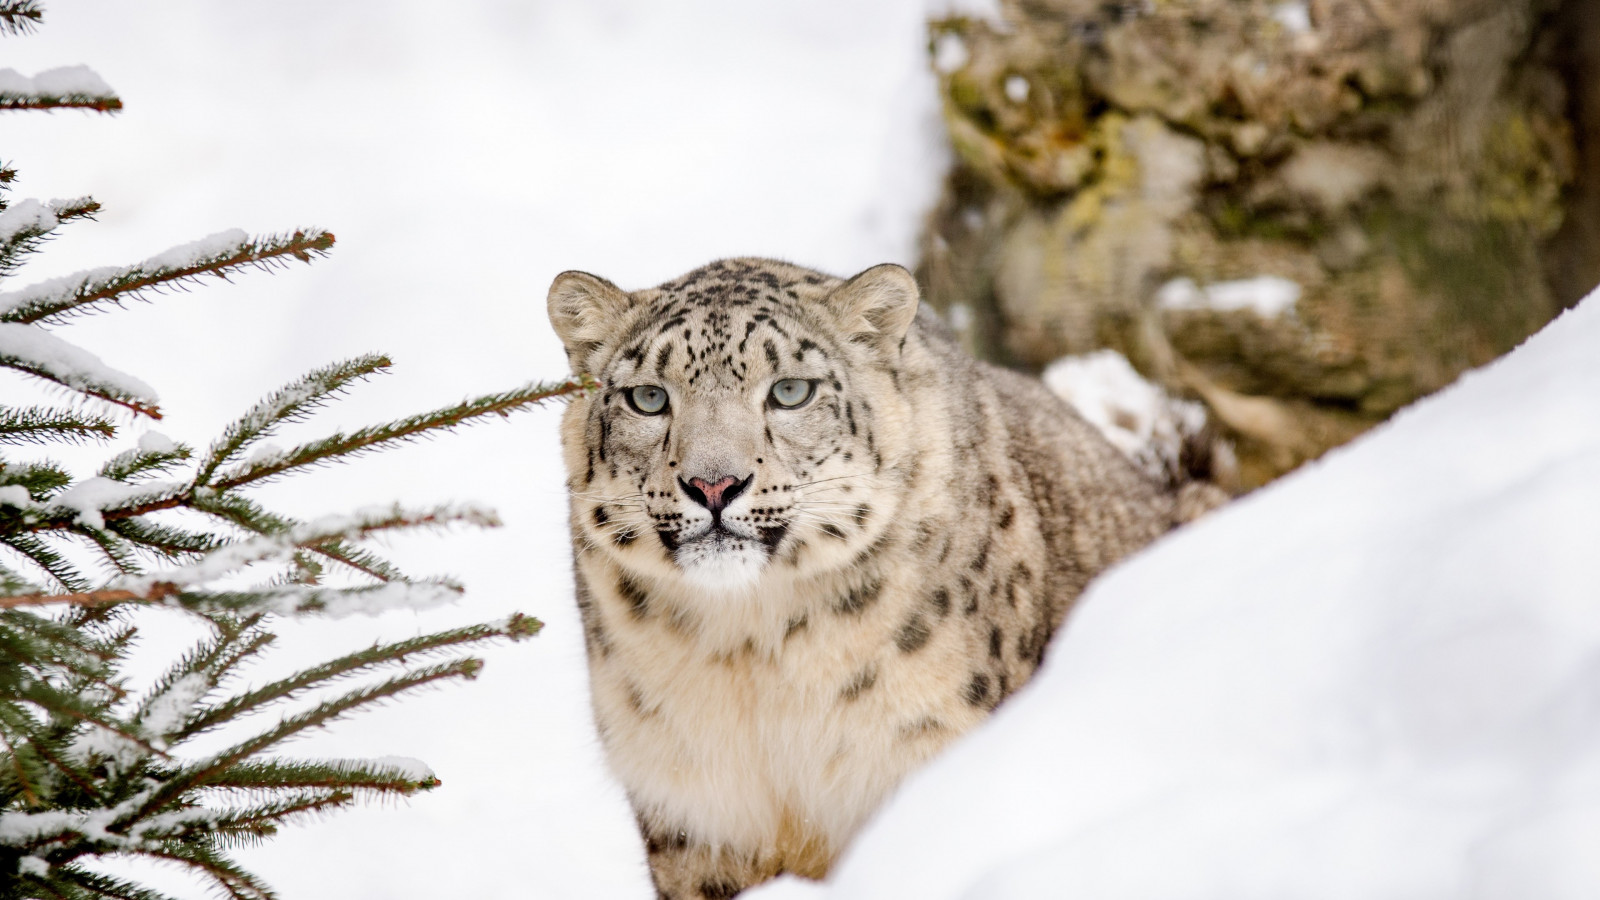 Snow leopard wallpaper 1600x900